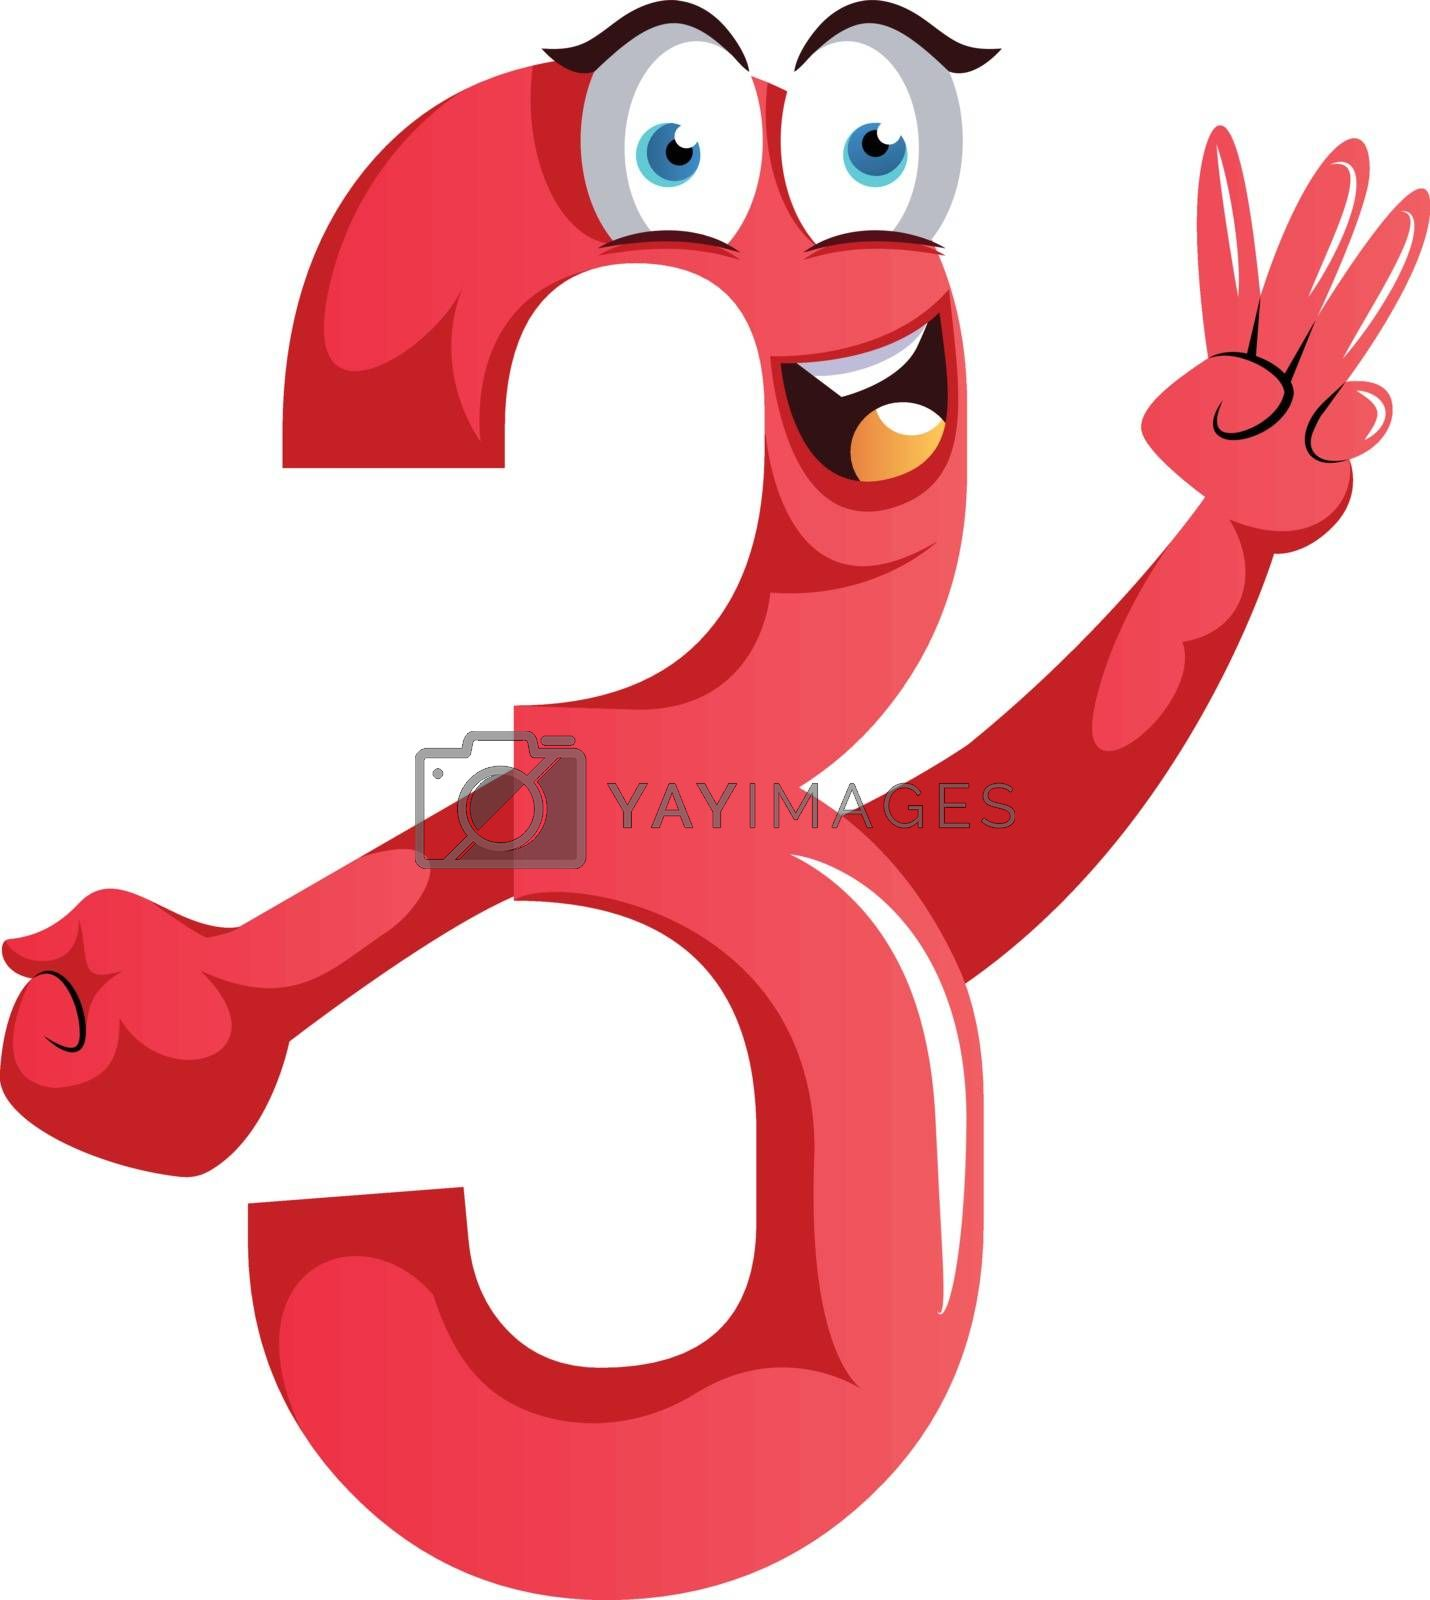 Royalty free image of Number three monster showing three fingers illustration vector o by Morphart